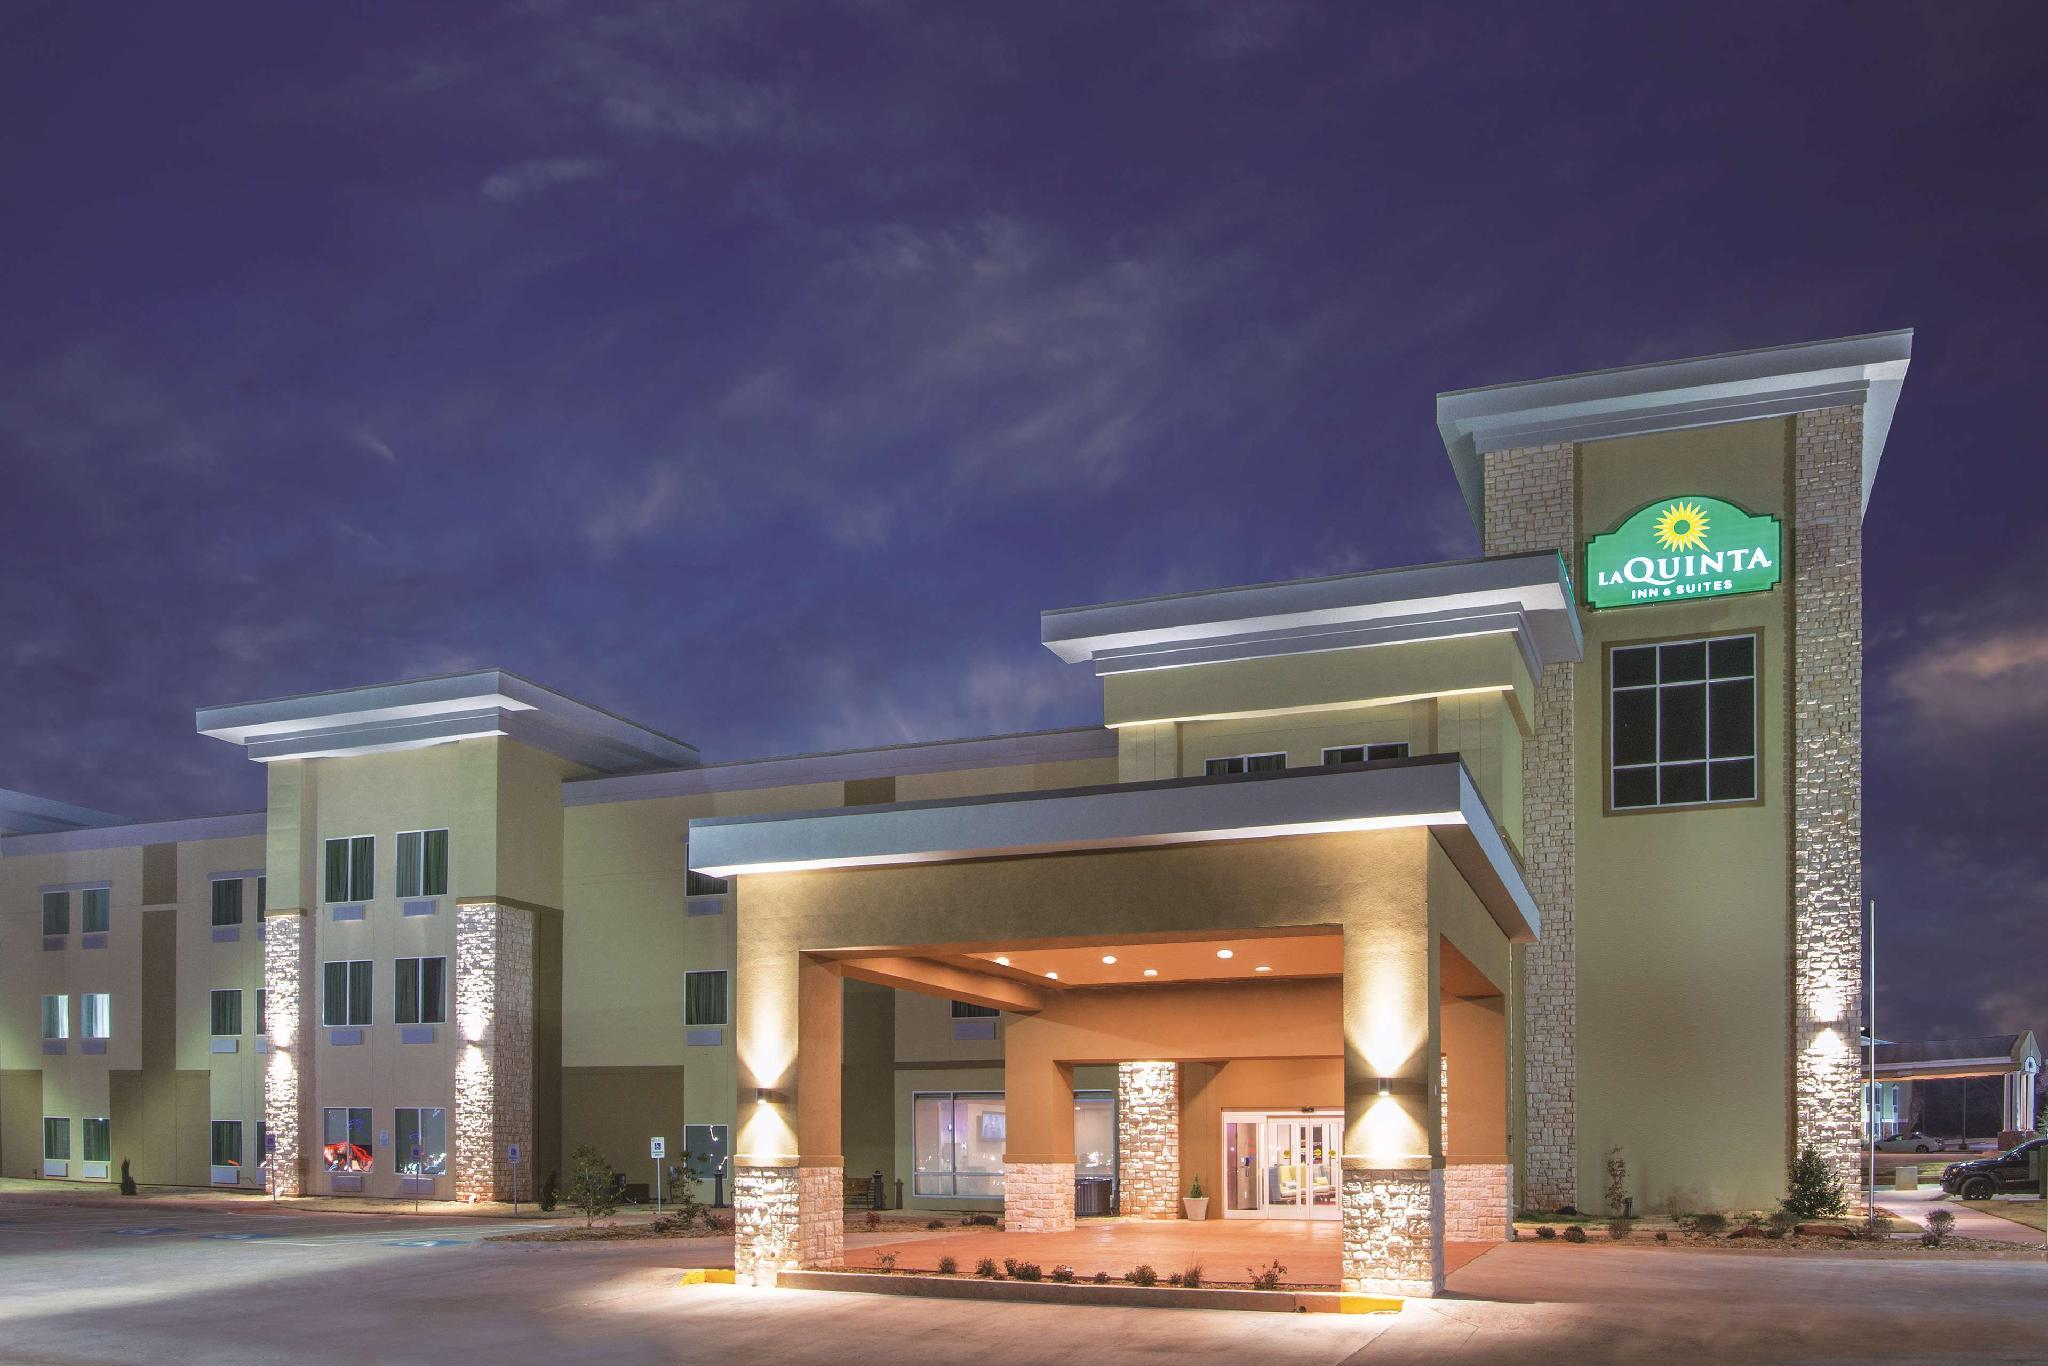 La Quinta Inn And Suites By Wyndham Guthrie